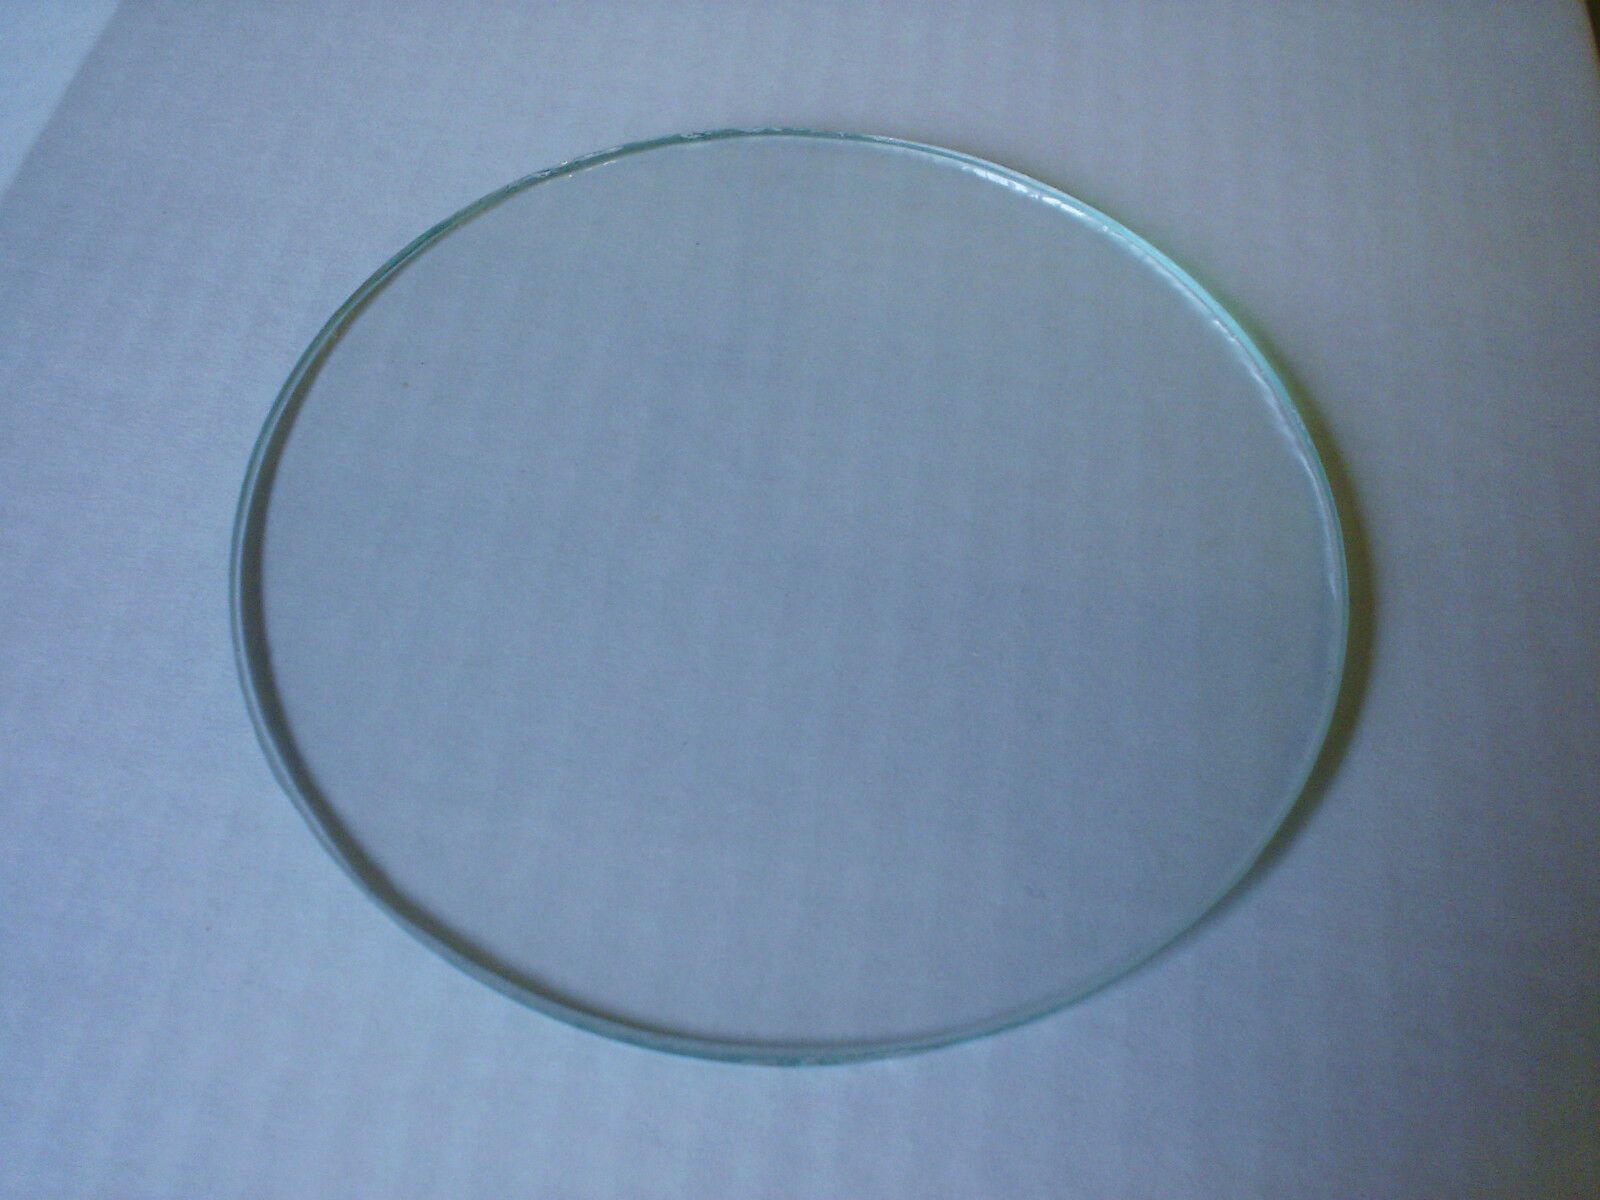 Replacement Clock Glass ***** One Piece Of 1 Mm Flat Clock Glass 140 Mm *****